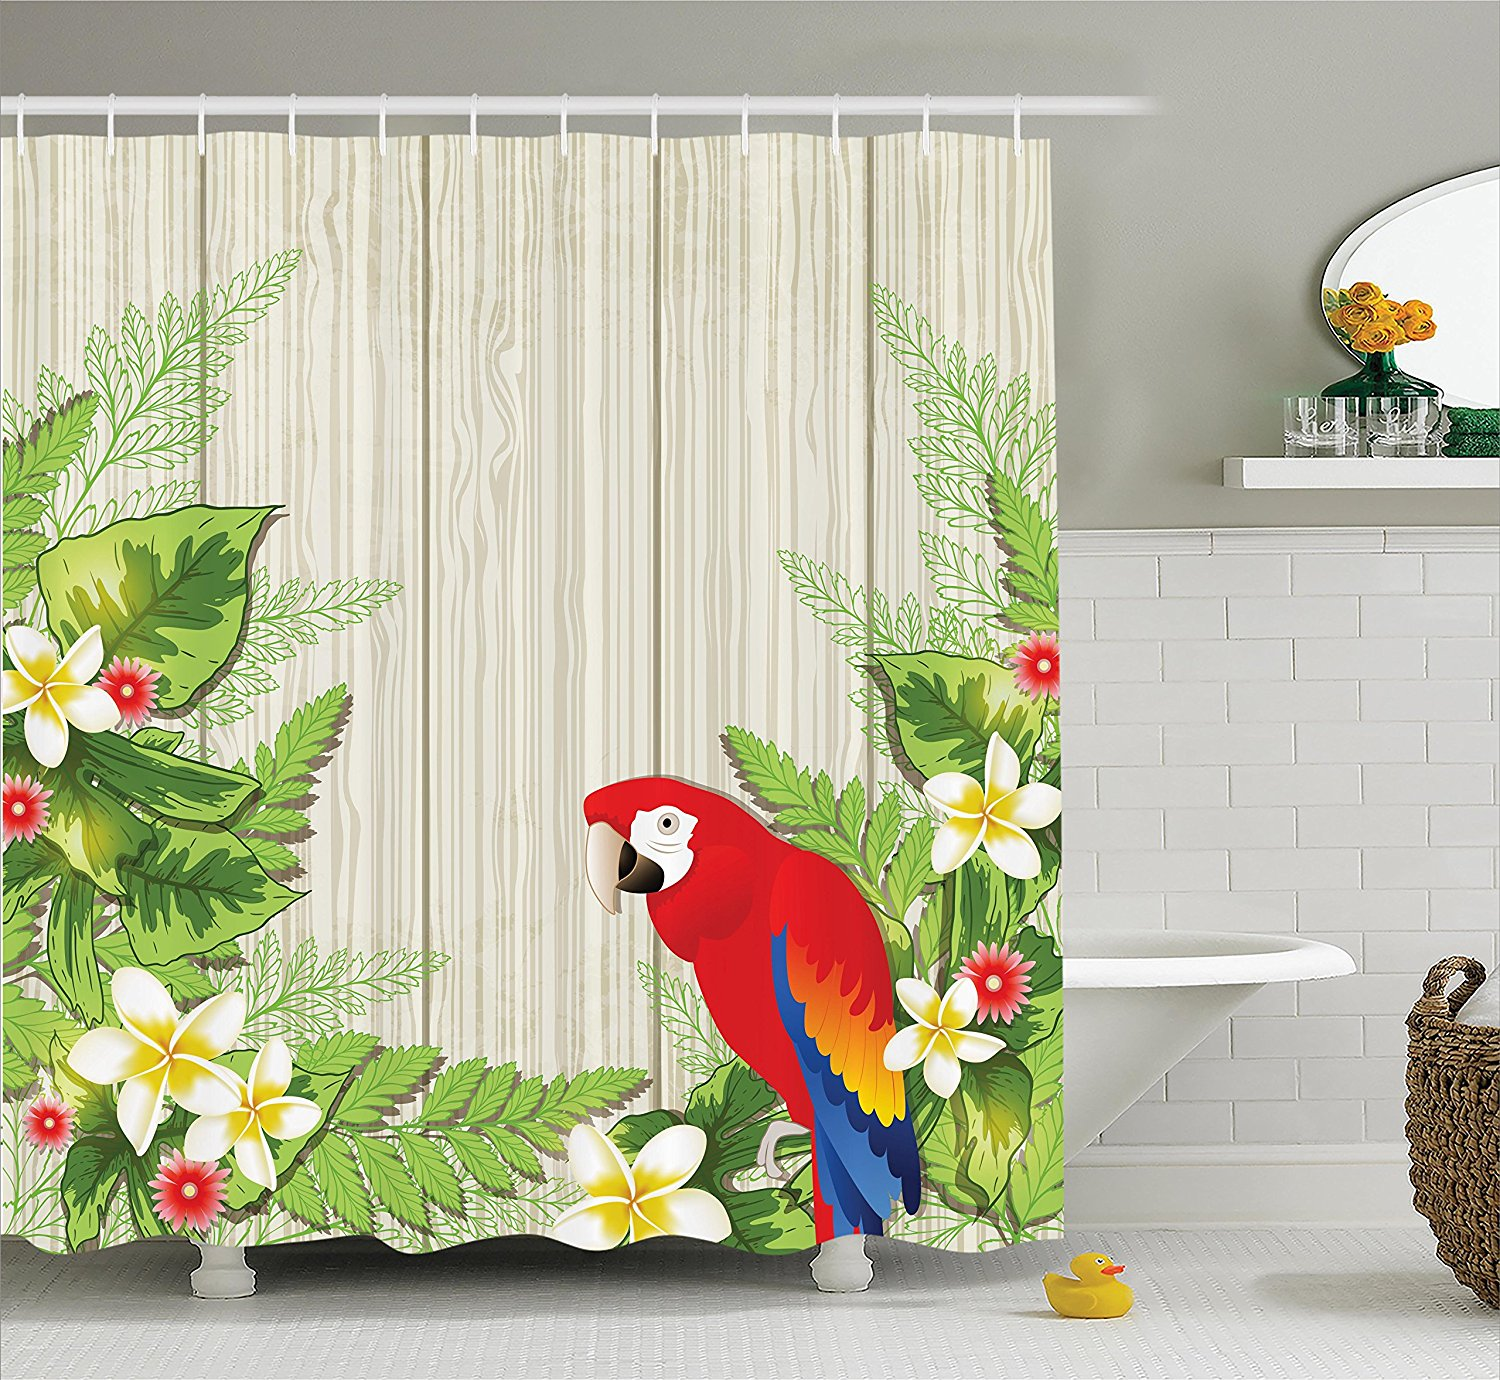 Ambesonne Parrots Decor Shower Curtain Set, Tropic Flowers And African Parrot In Summer Garden Wooden Wall Ferns Decorative Art, Bathroom Accessories, 69W X 70L Inches, Cream Green Red